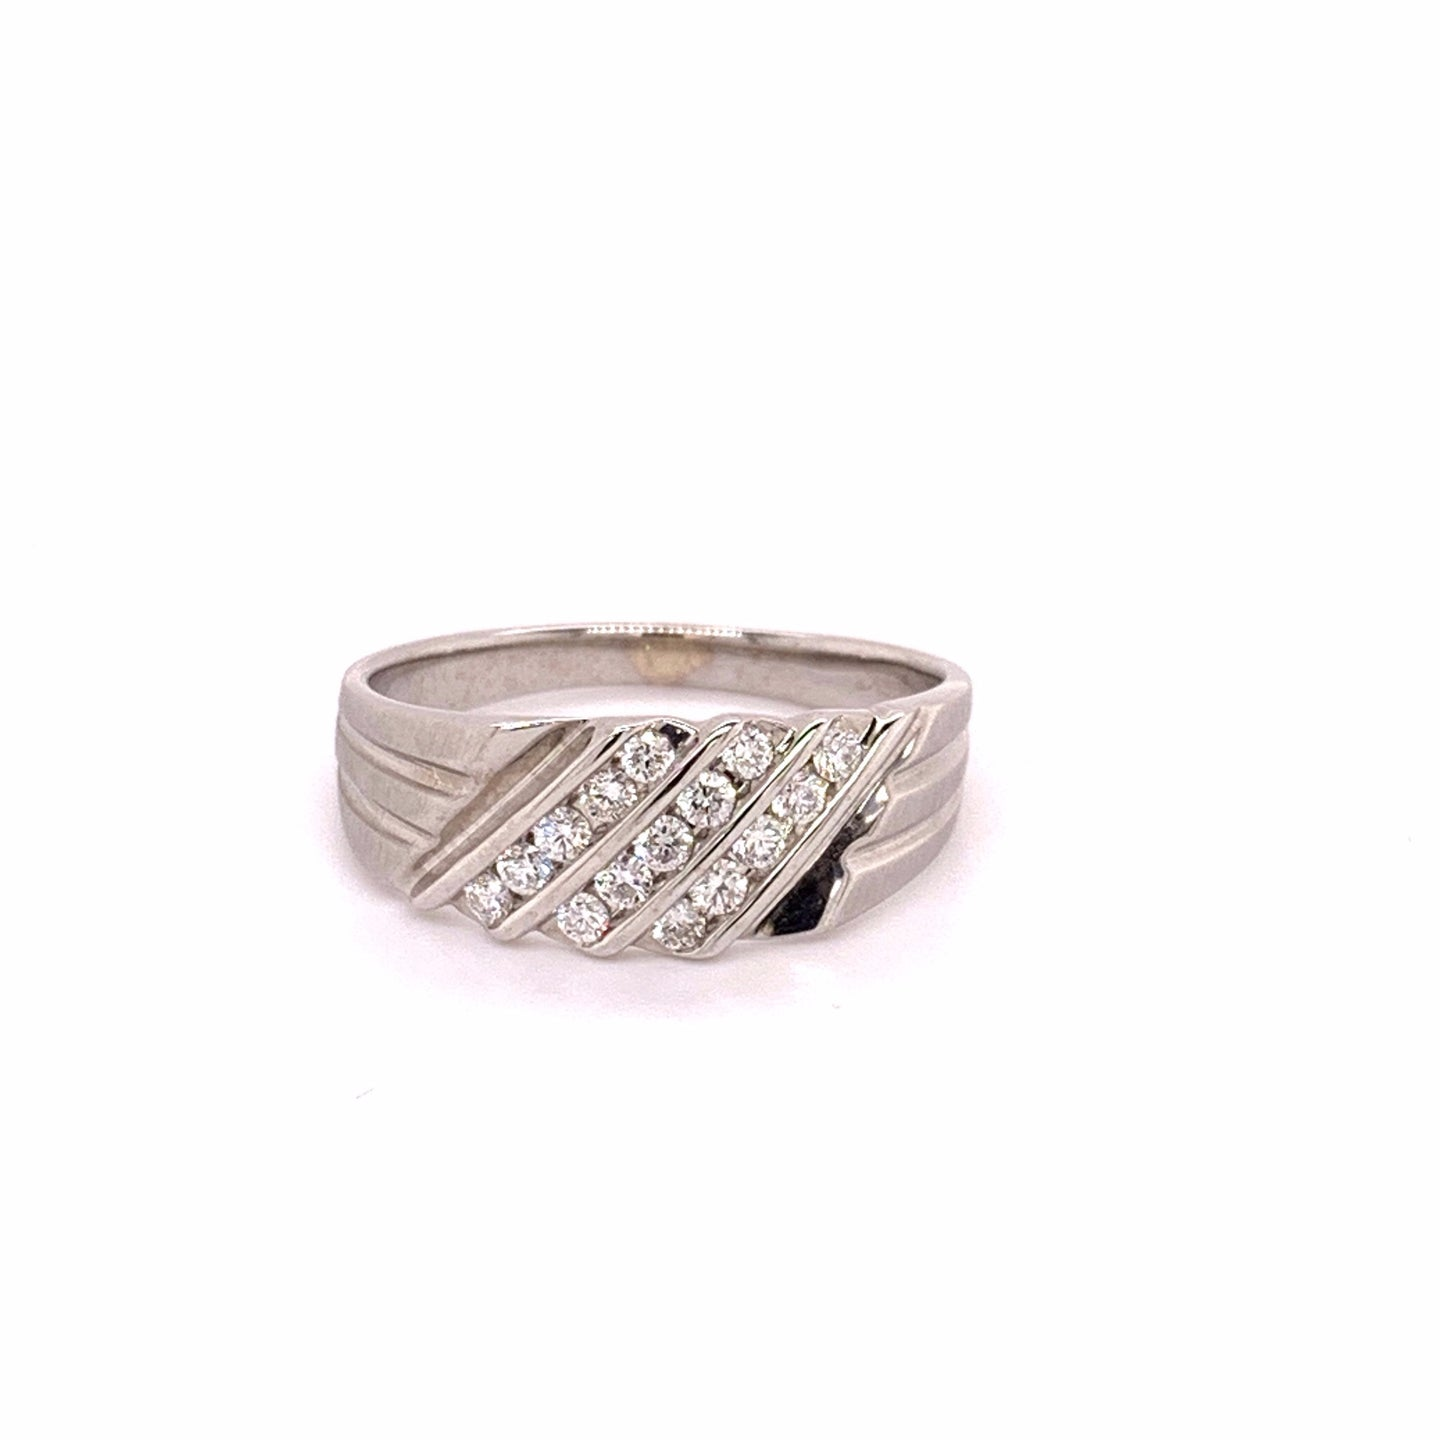 14K White Gold Diamond Ring with Brushed Finish